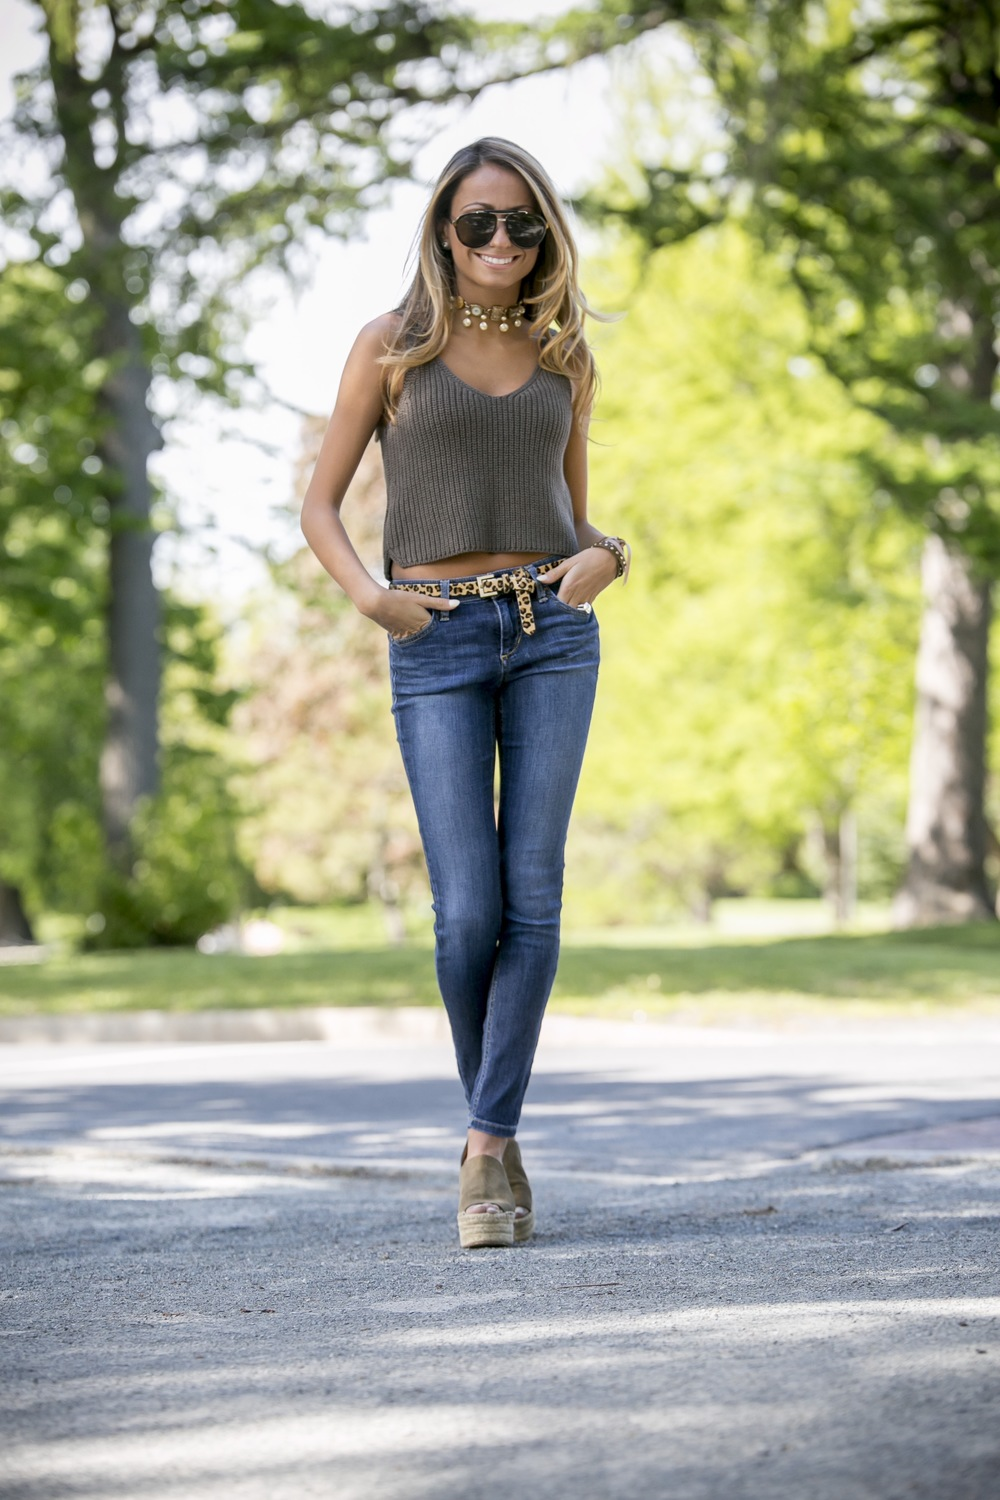 Top:Intermix|Jeans:Joe's Jeans|Wedges:Chloe Dino Petrocelli Photography